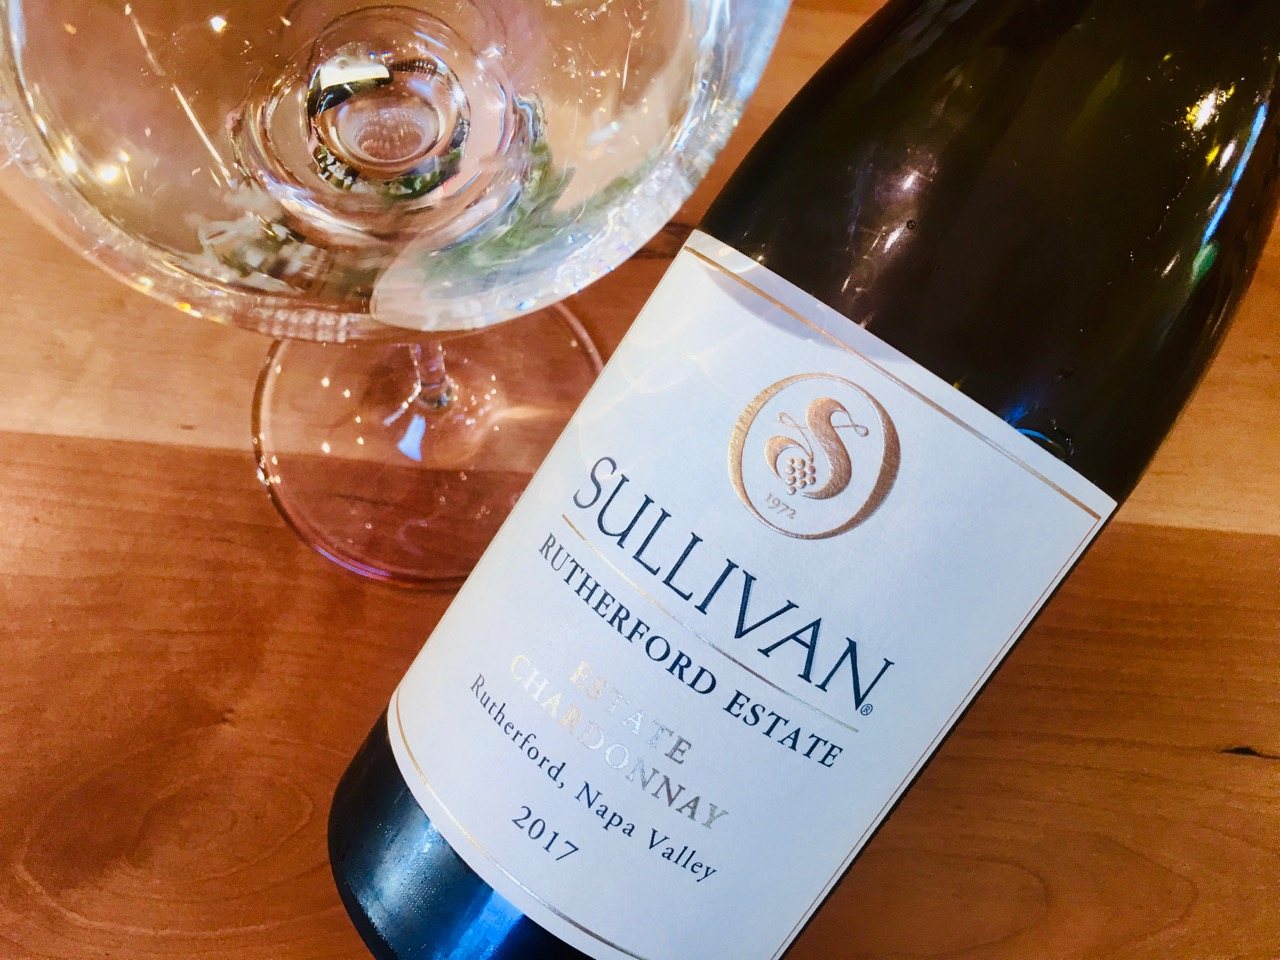 2017 Sullivan Estate Chardonnay Rutherford Napa Valley